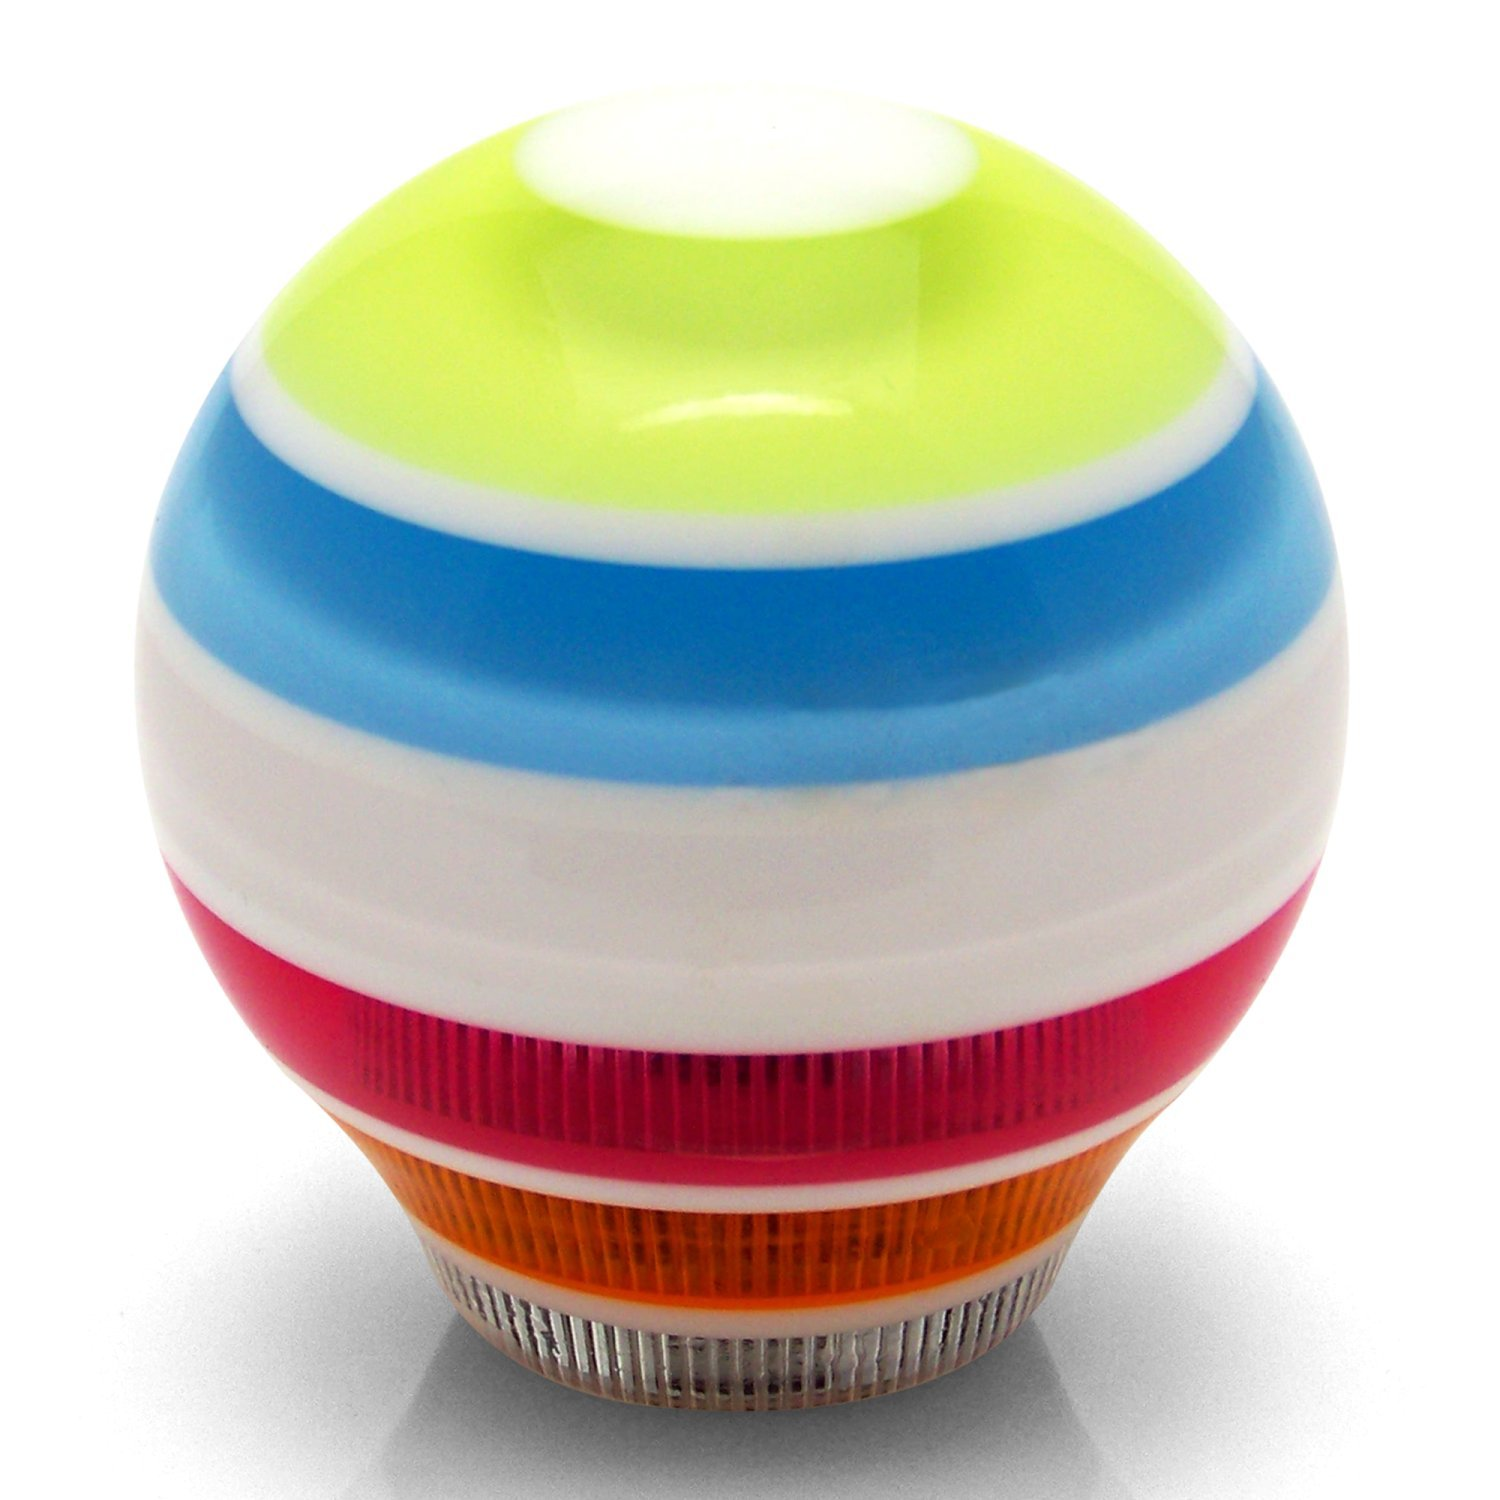 American Shifter 273142 White 4 Speed Pattern-Dots 3n Stripe Shift Knob with M16 x 1.5 Insert